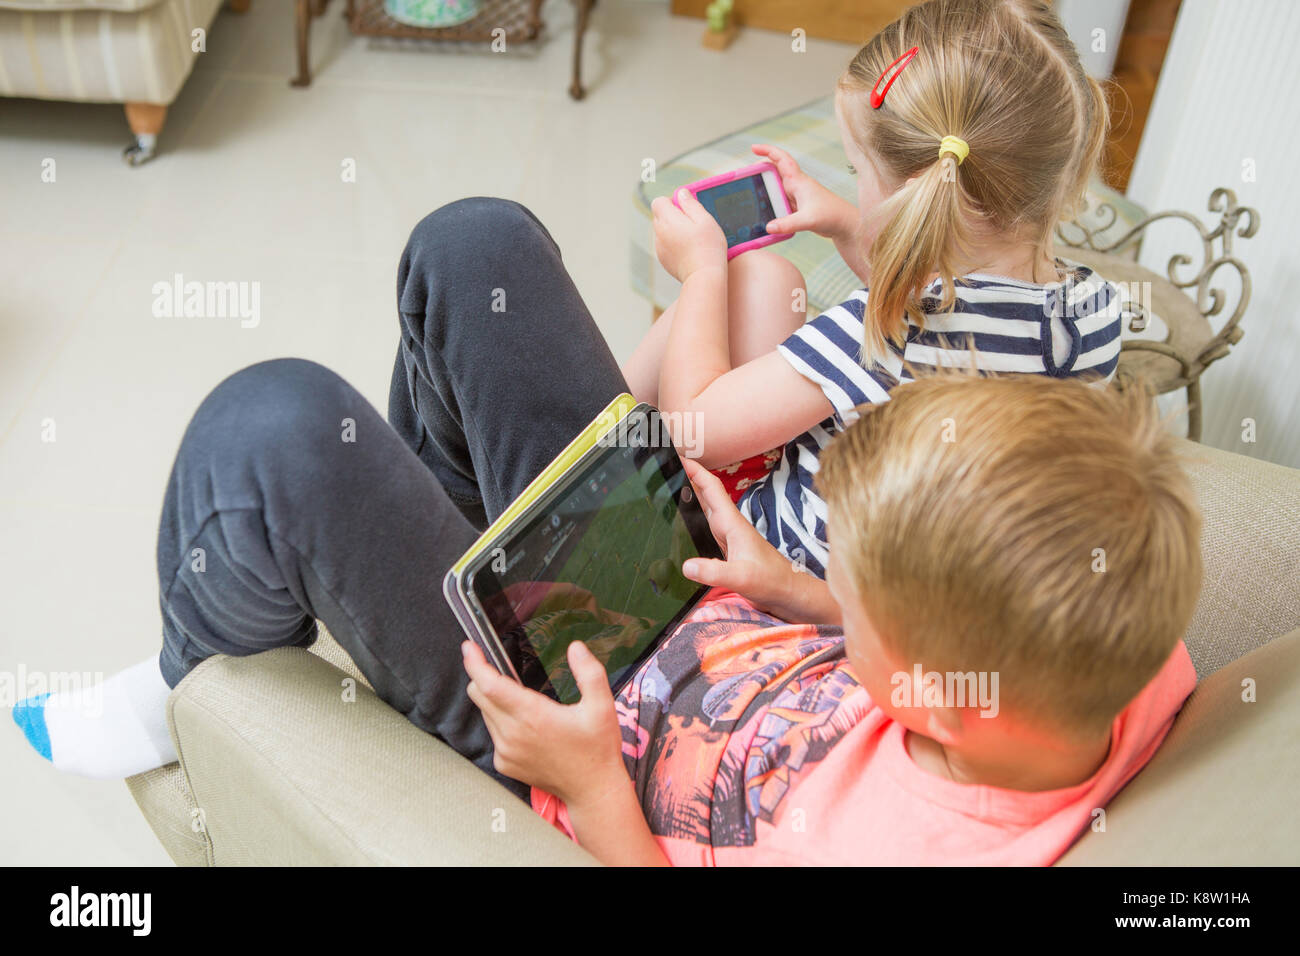 children using technology for gaming - Stock Image